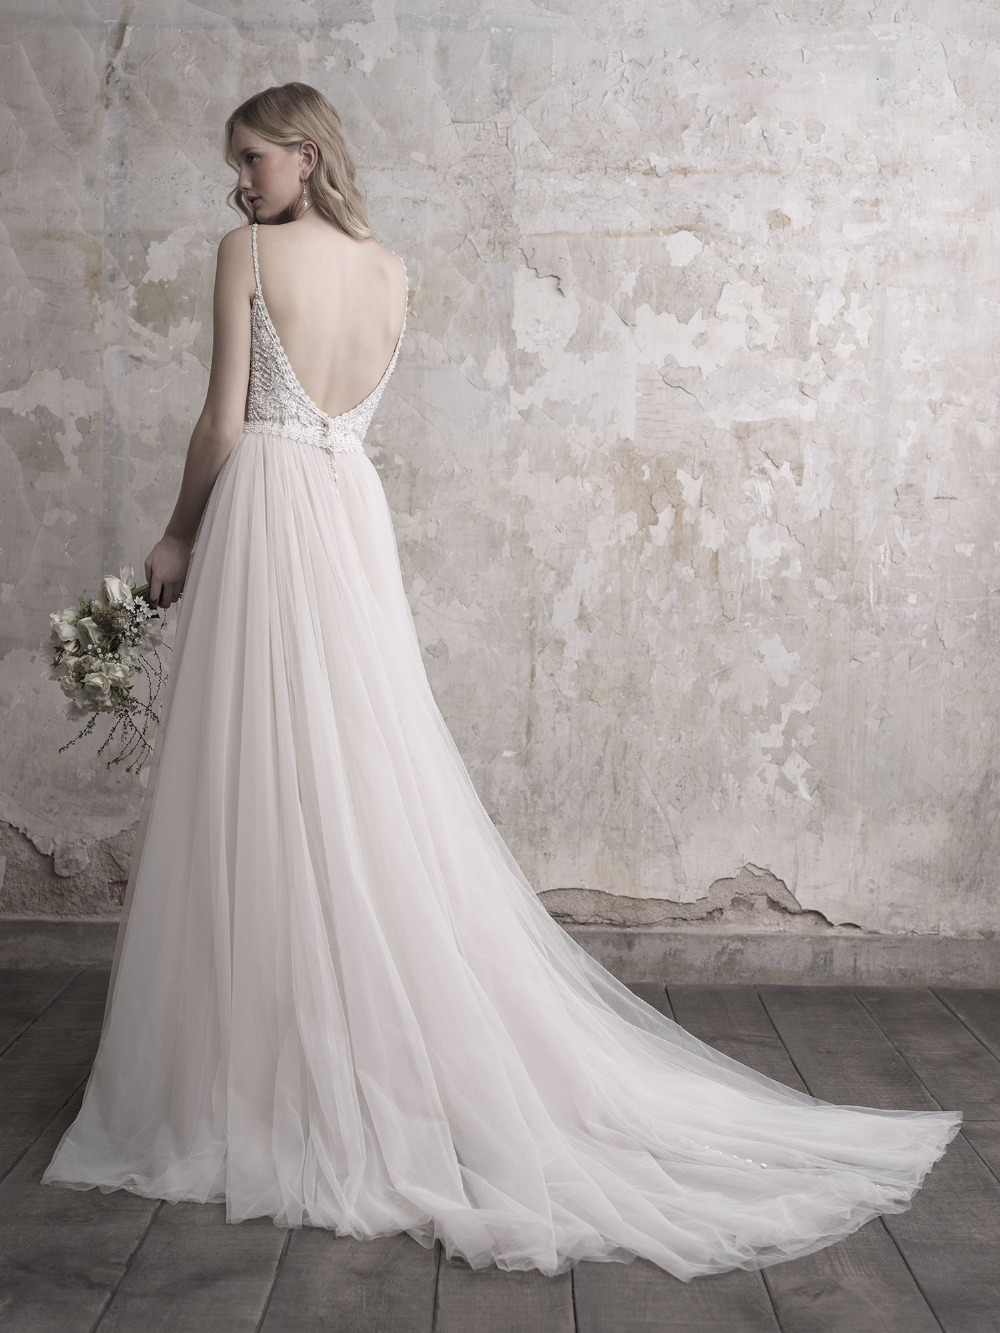 Image 5 - Gorgeous Pearls Beads Lace Applique Tulle V neck Neckline Sweep Train Wedding Dress with Backless A line Beads Spaghetti Straps-in Wedding Dresses from Weddings & Events